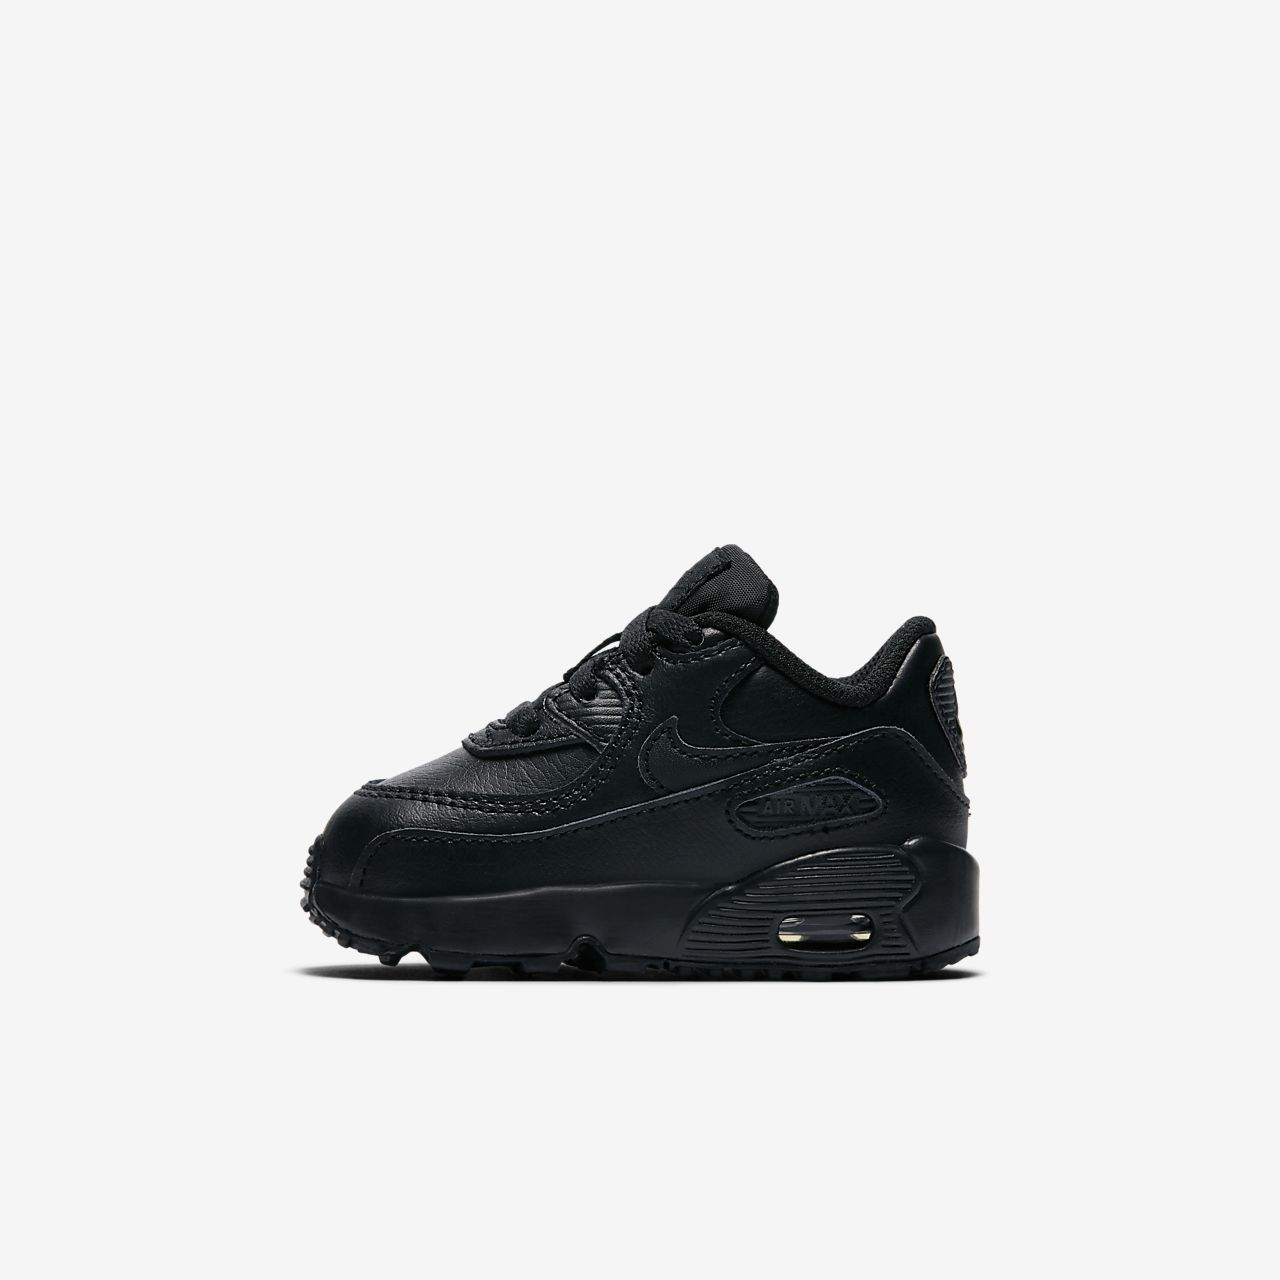 Nike Air Max 90 Leather Schoen baby's/peuters